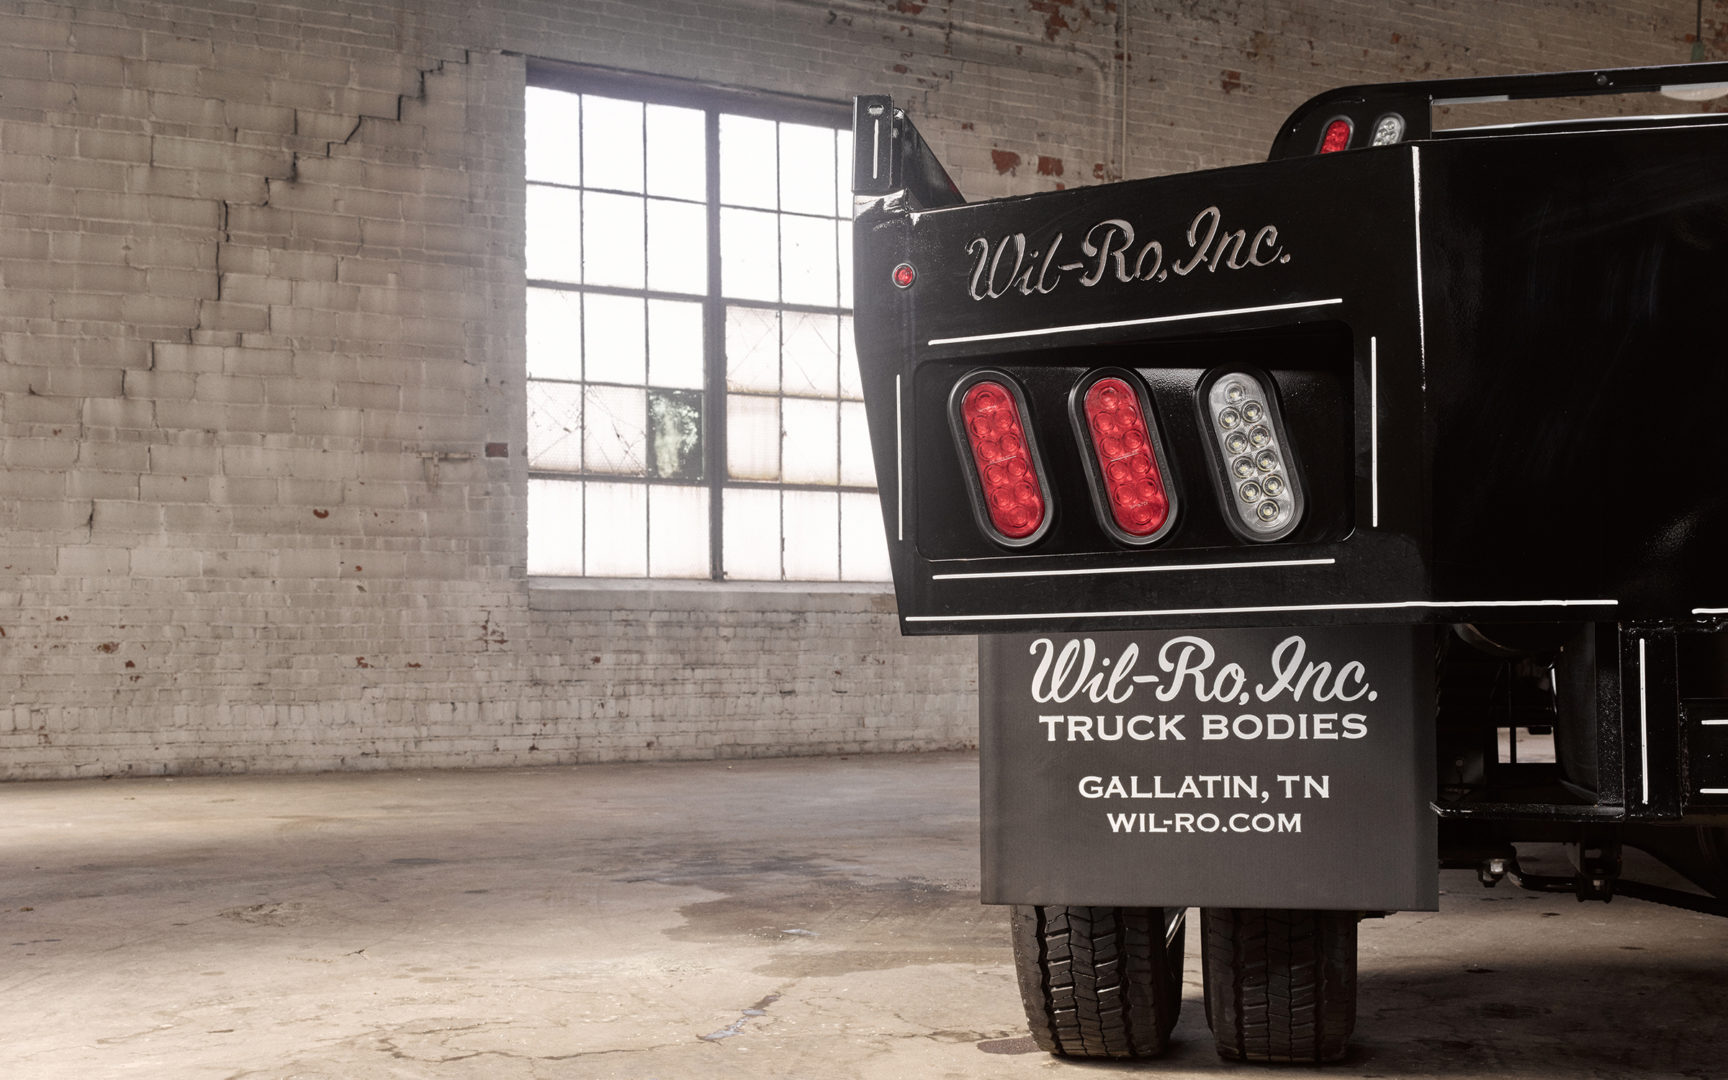 Rear Taillights of Wil-Ro Truck